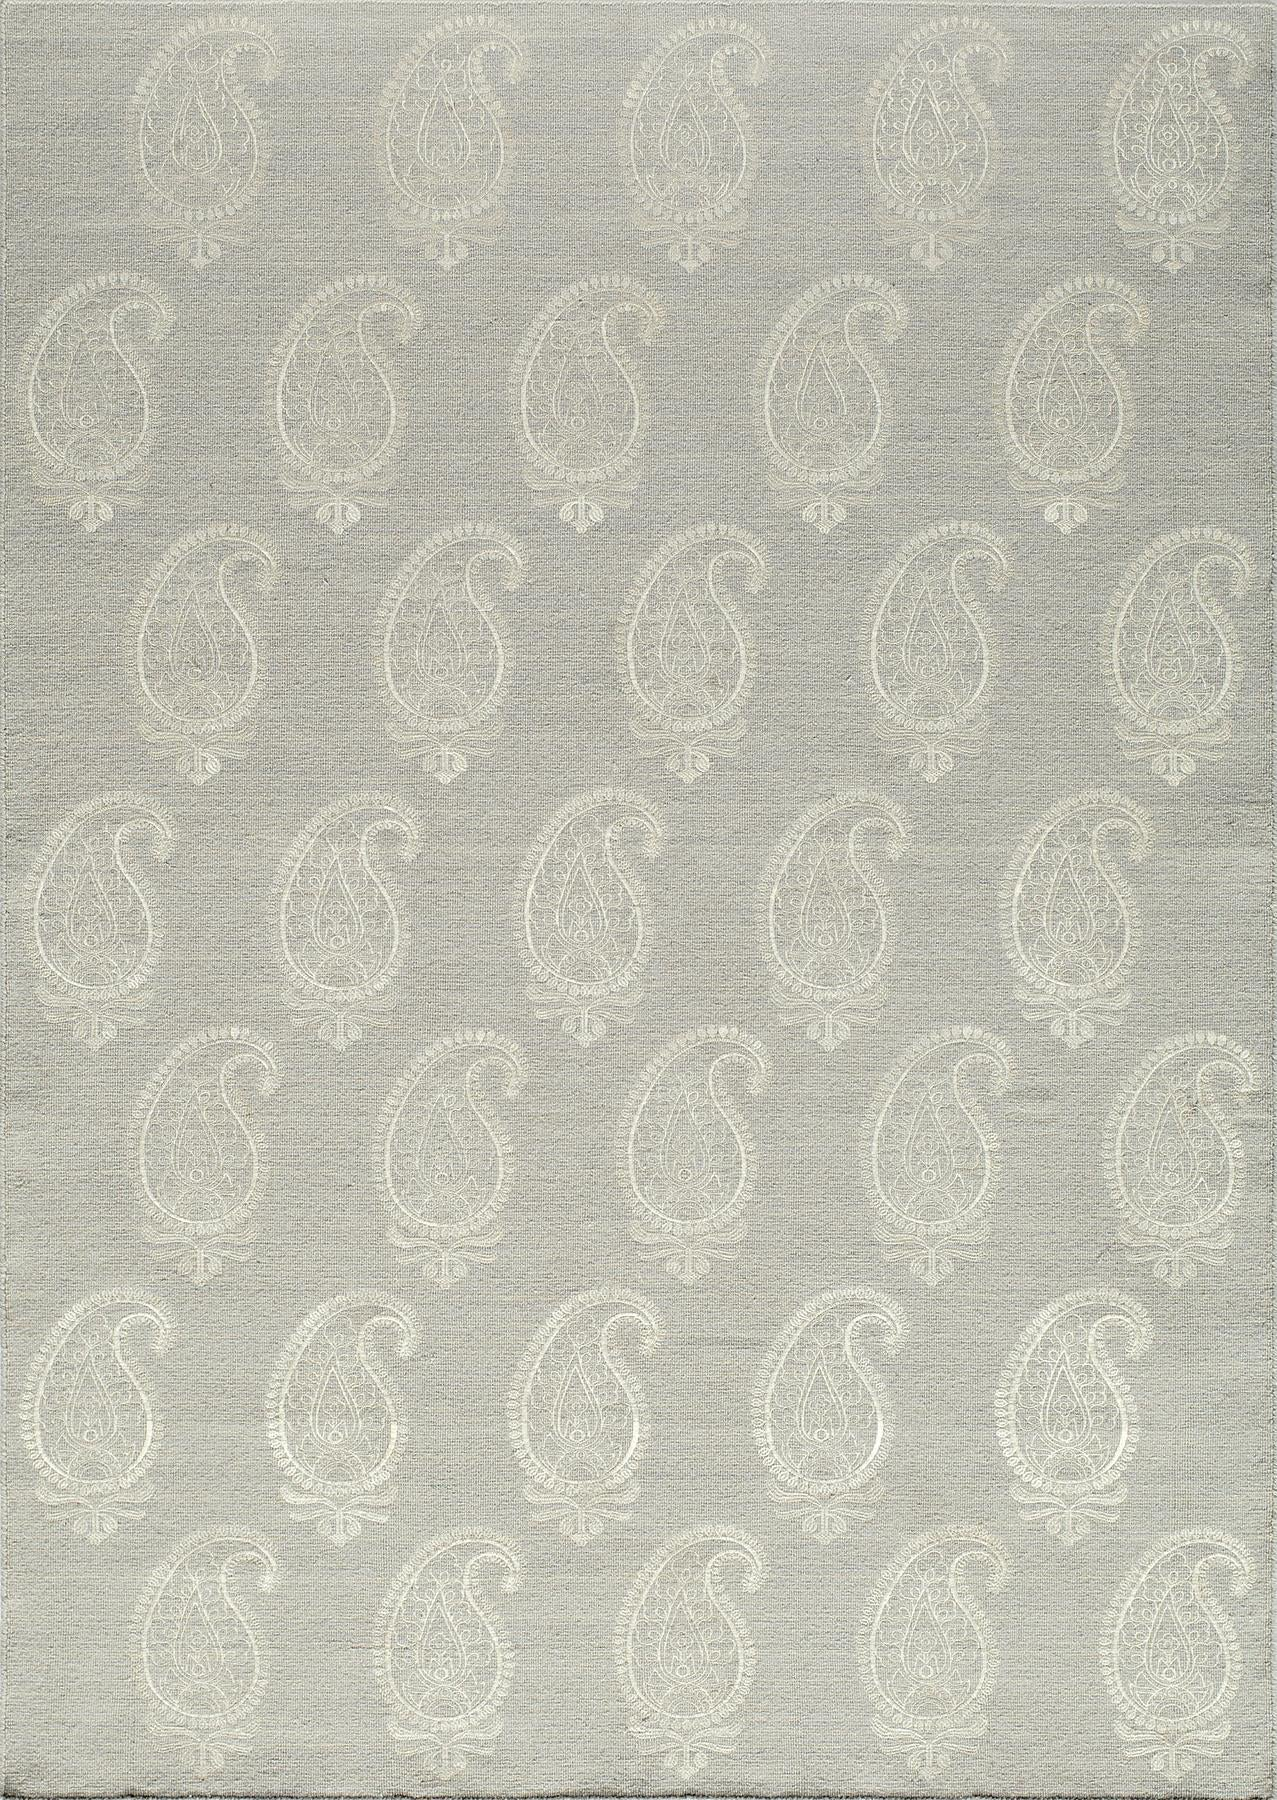 Momeni Lace Embroided LAC-1 Silver Area Rug main image